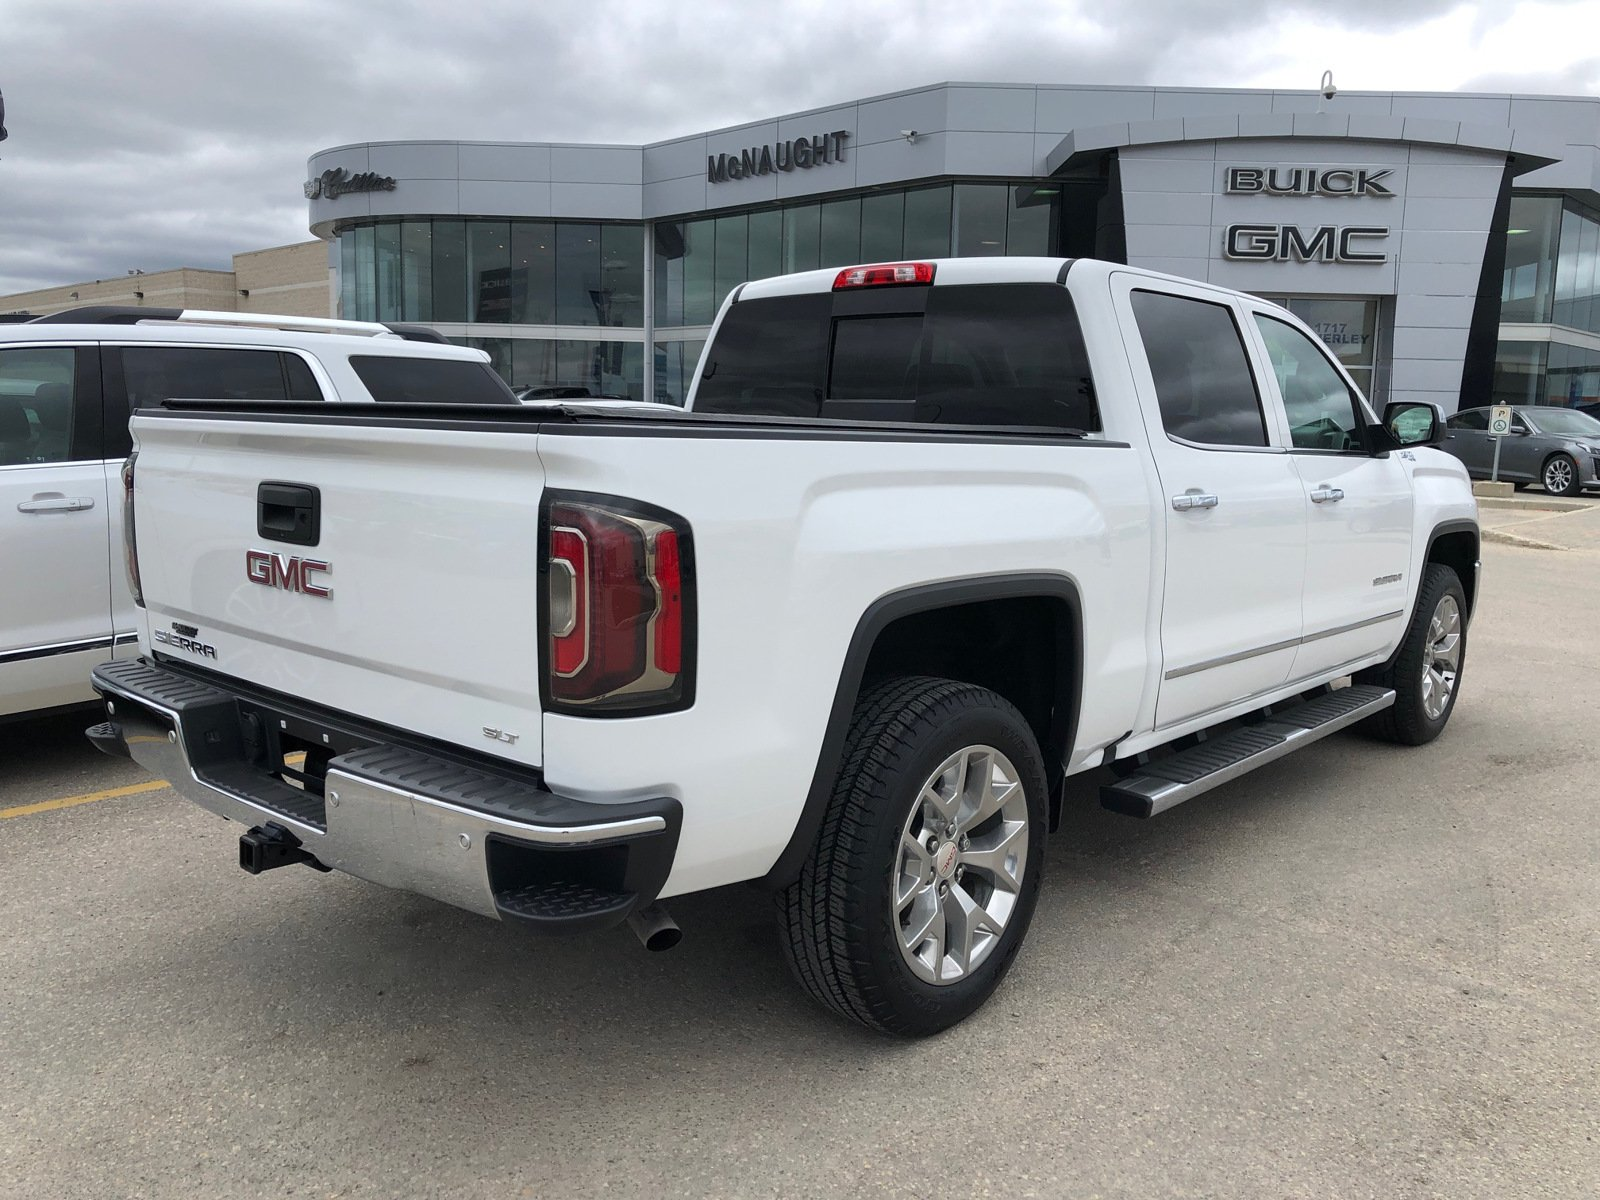 Certified Pre-Owned 2018 GMC Sierra 1500 SLT 4x4 Crew Cab | Heated & Cooled Seats